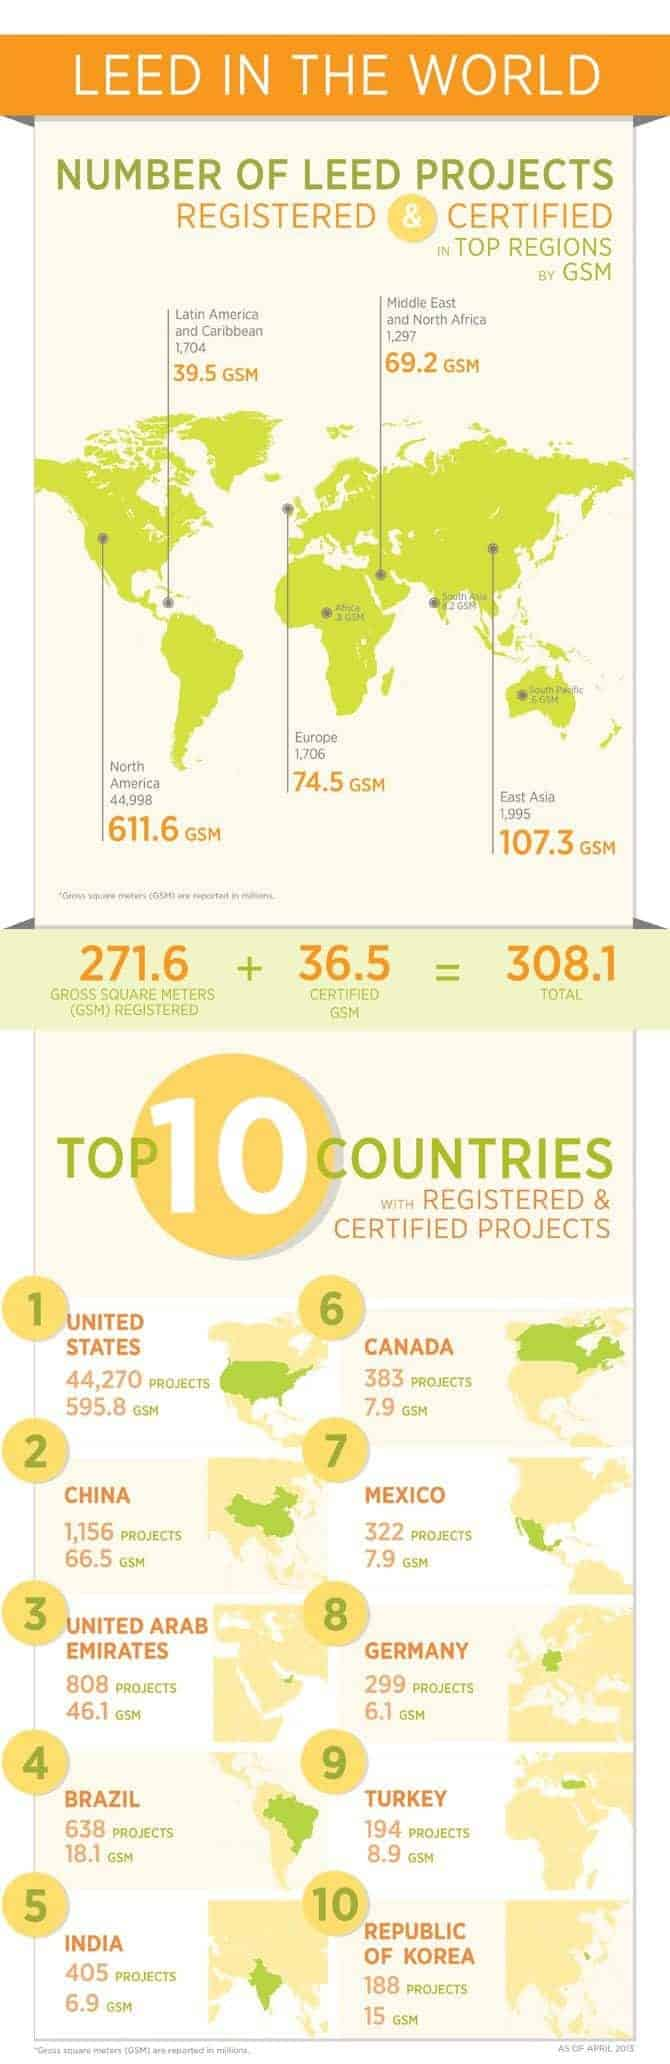 Registered LEED projects in the world [infographic]